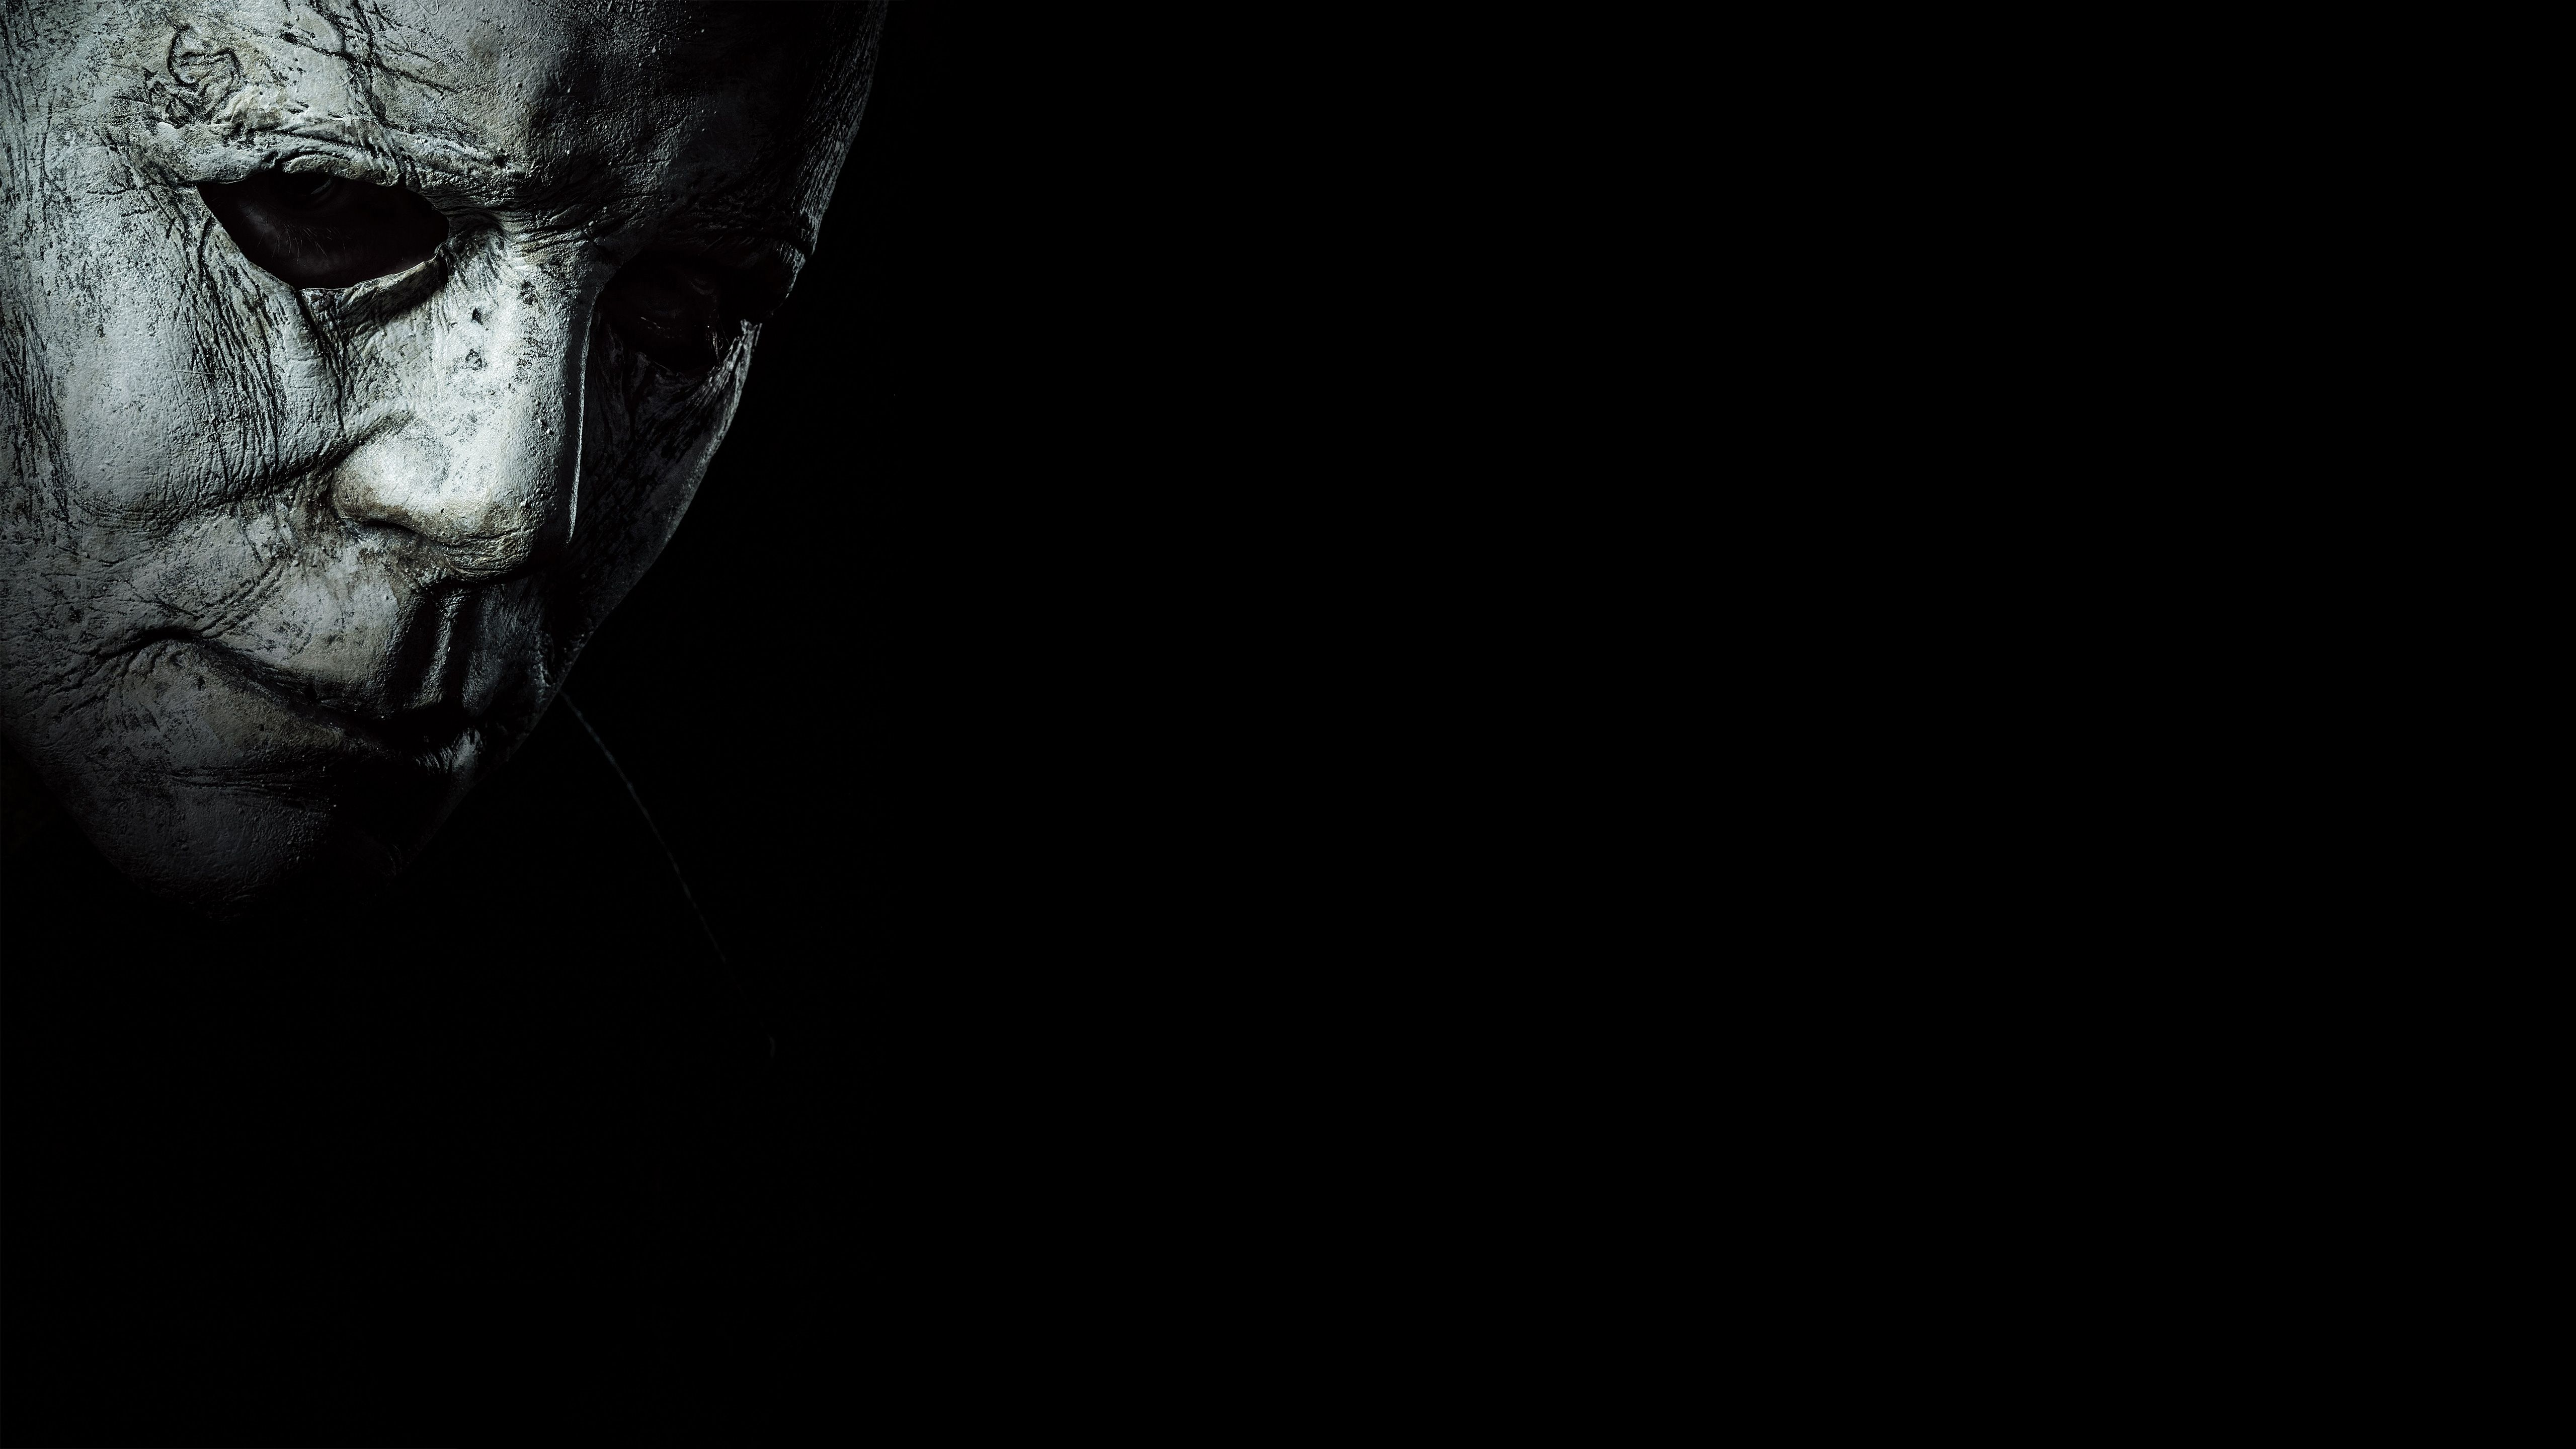 5120x2880 Halloween 2018 Movie 5k, HD Movies, 4k Wallpapers, Images ...